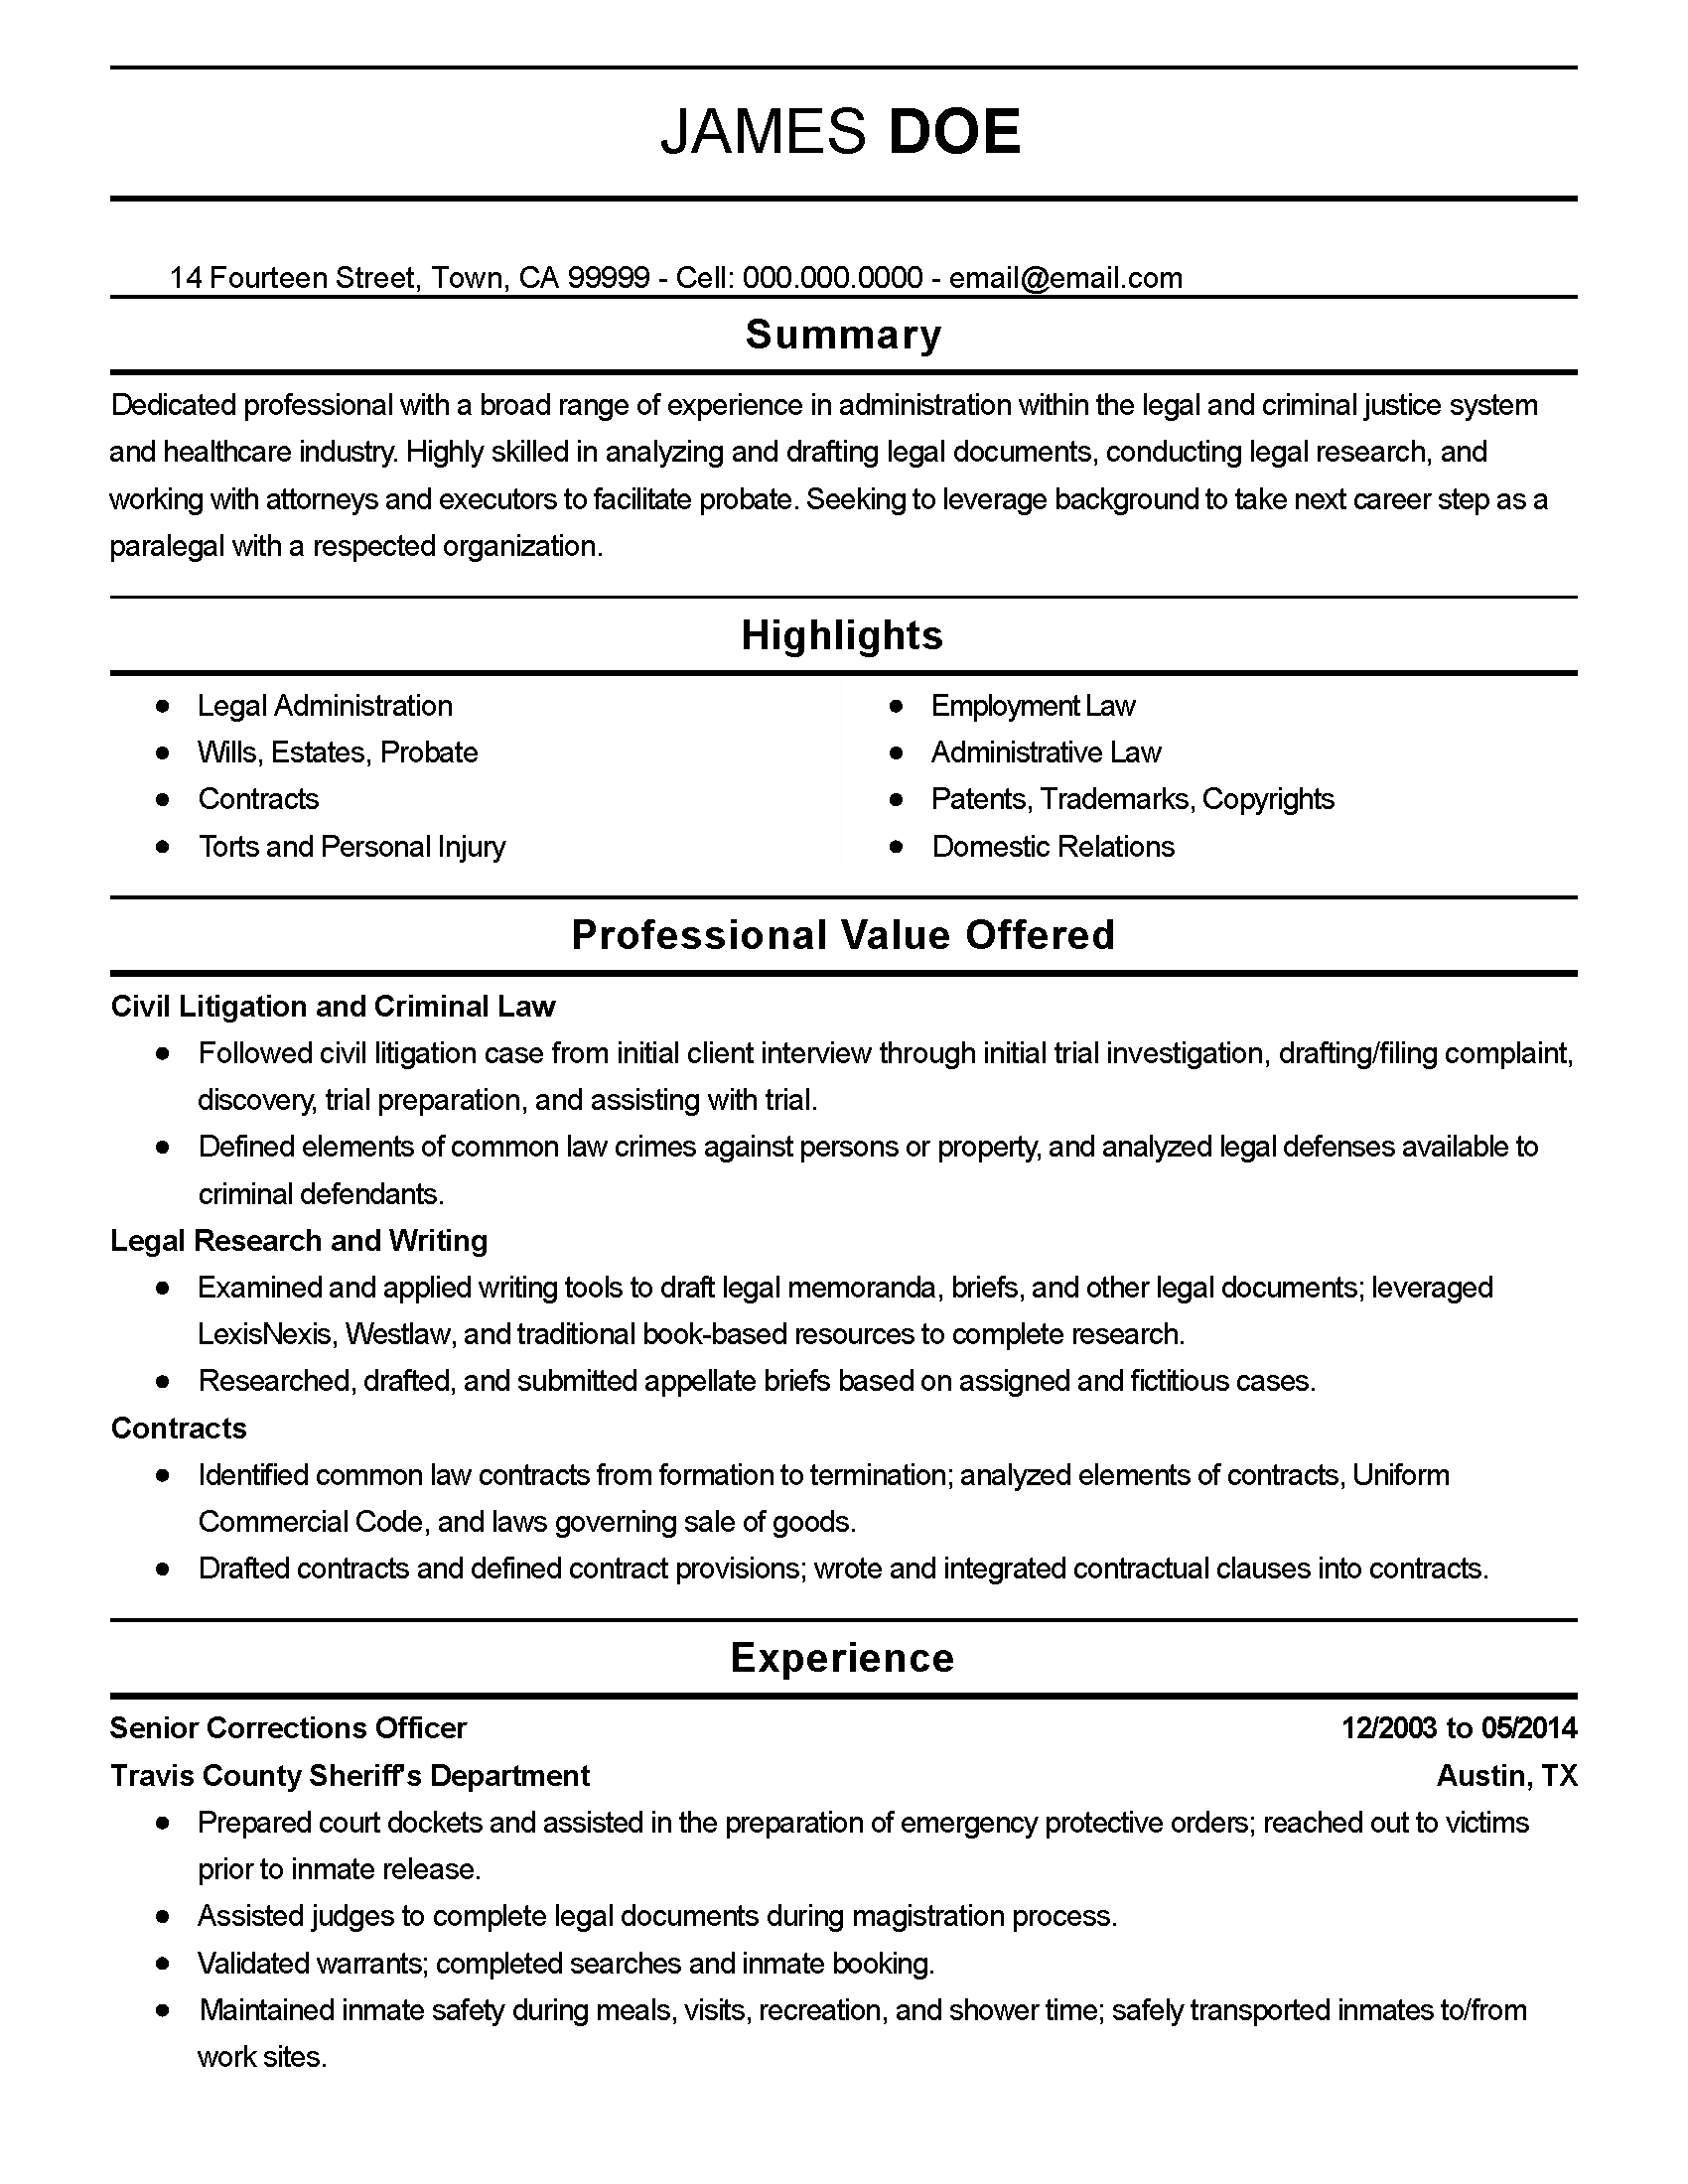 job description for correctional officer resume chief financial officer cfo job description resume glass quality manager - Police Officer Resume Templates